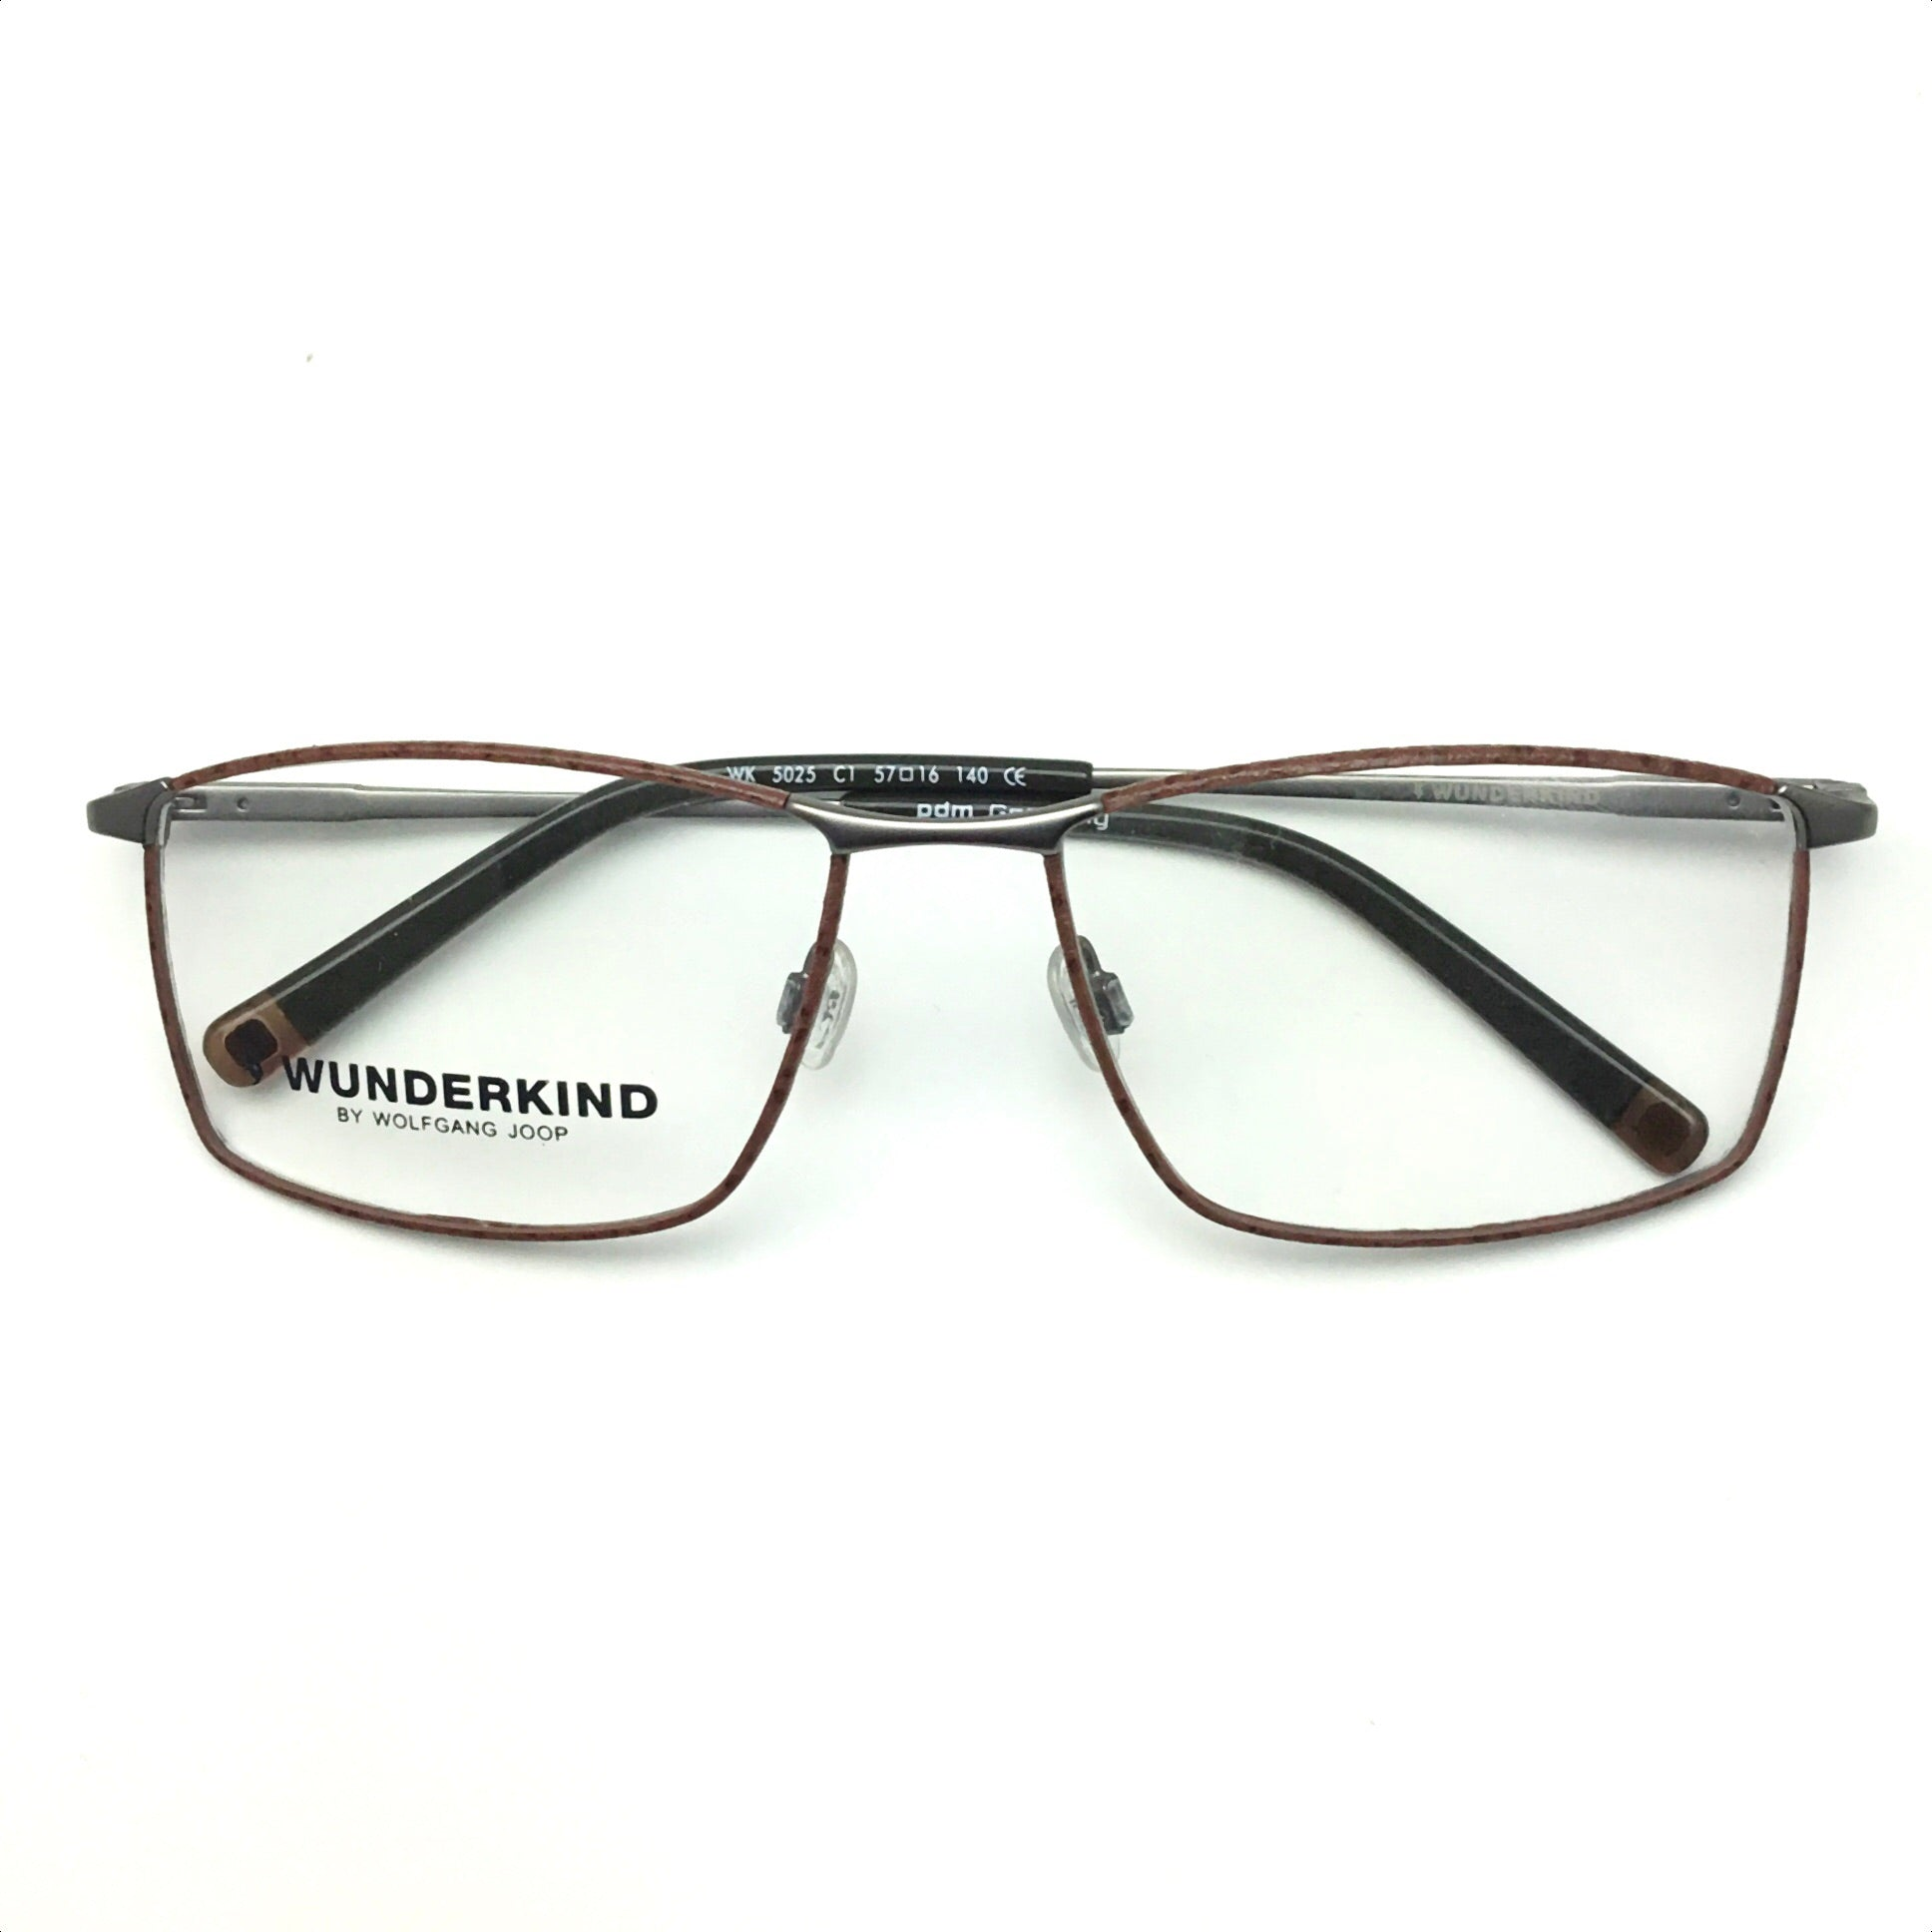 Wunder Kind Glasses $299 Germany P7